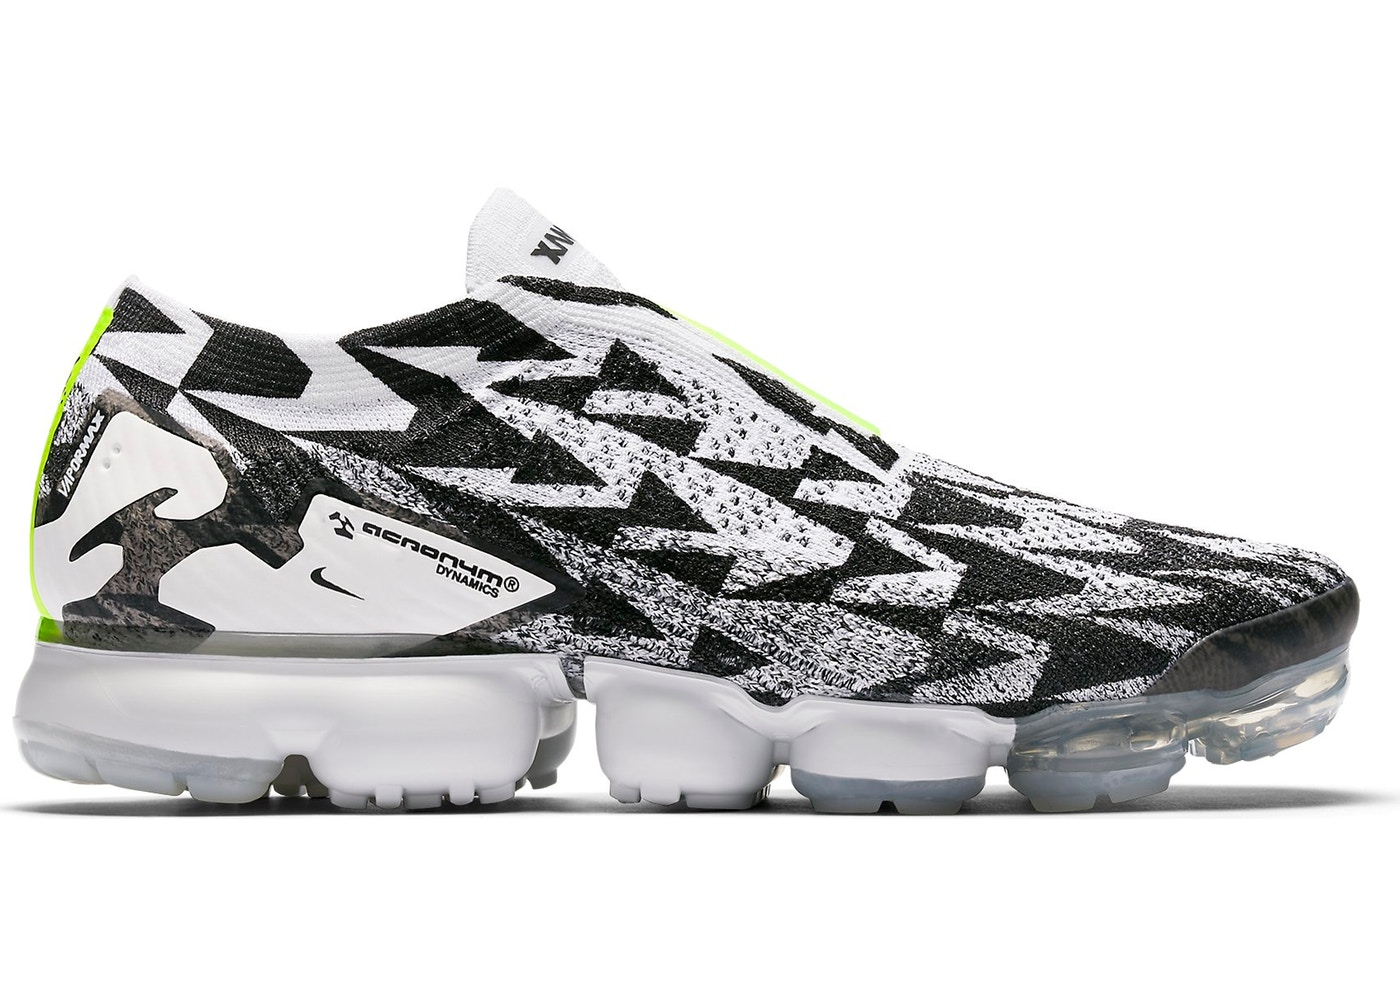 new style 338df bc6ab Air VaporMax Moc 2 Acronym Light Bone - AQ0996-001